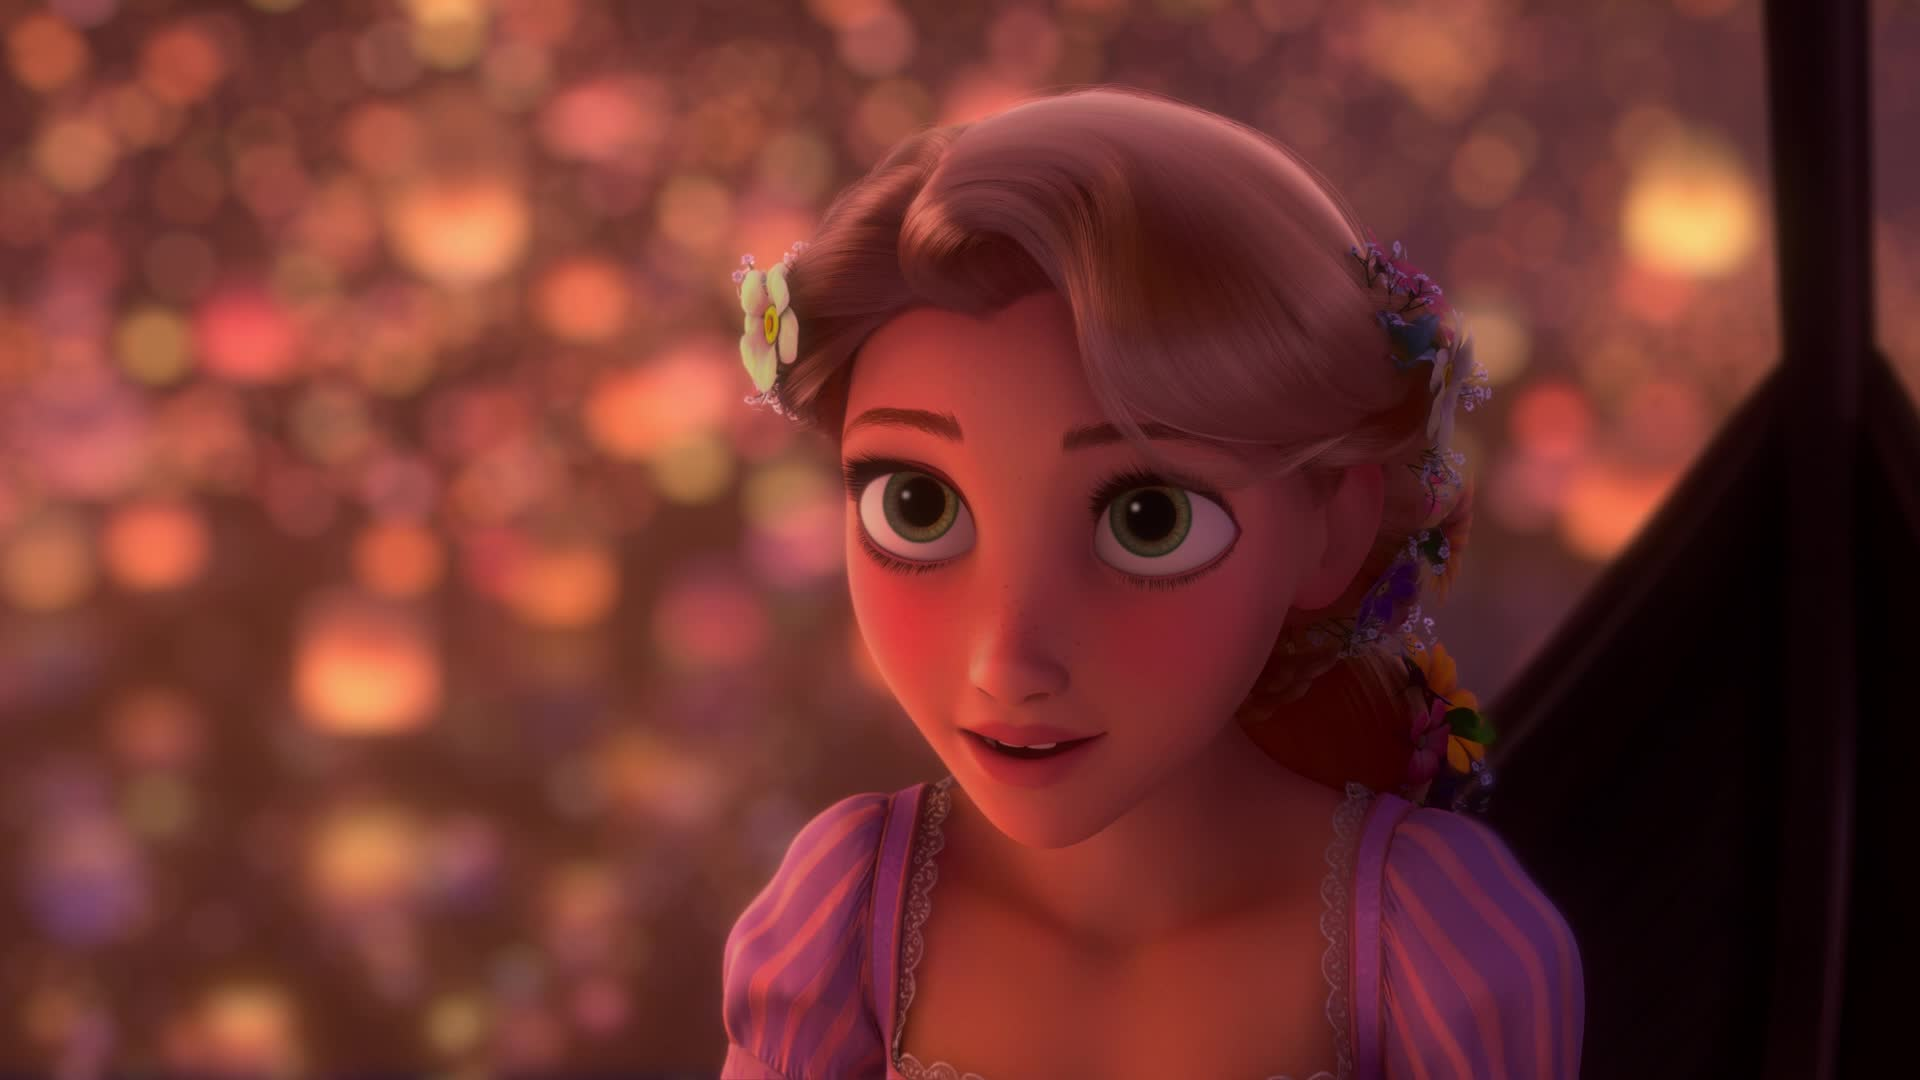 tangled images for mobile